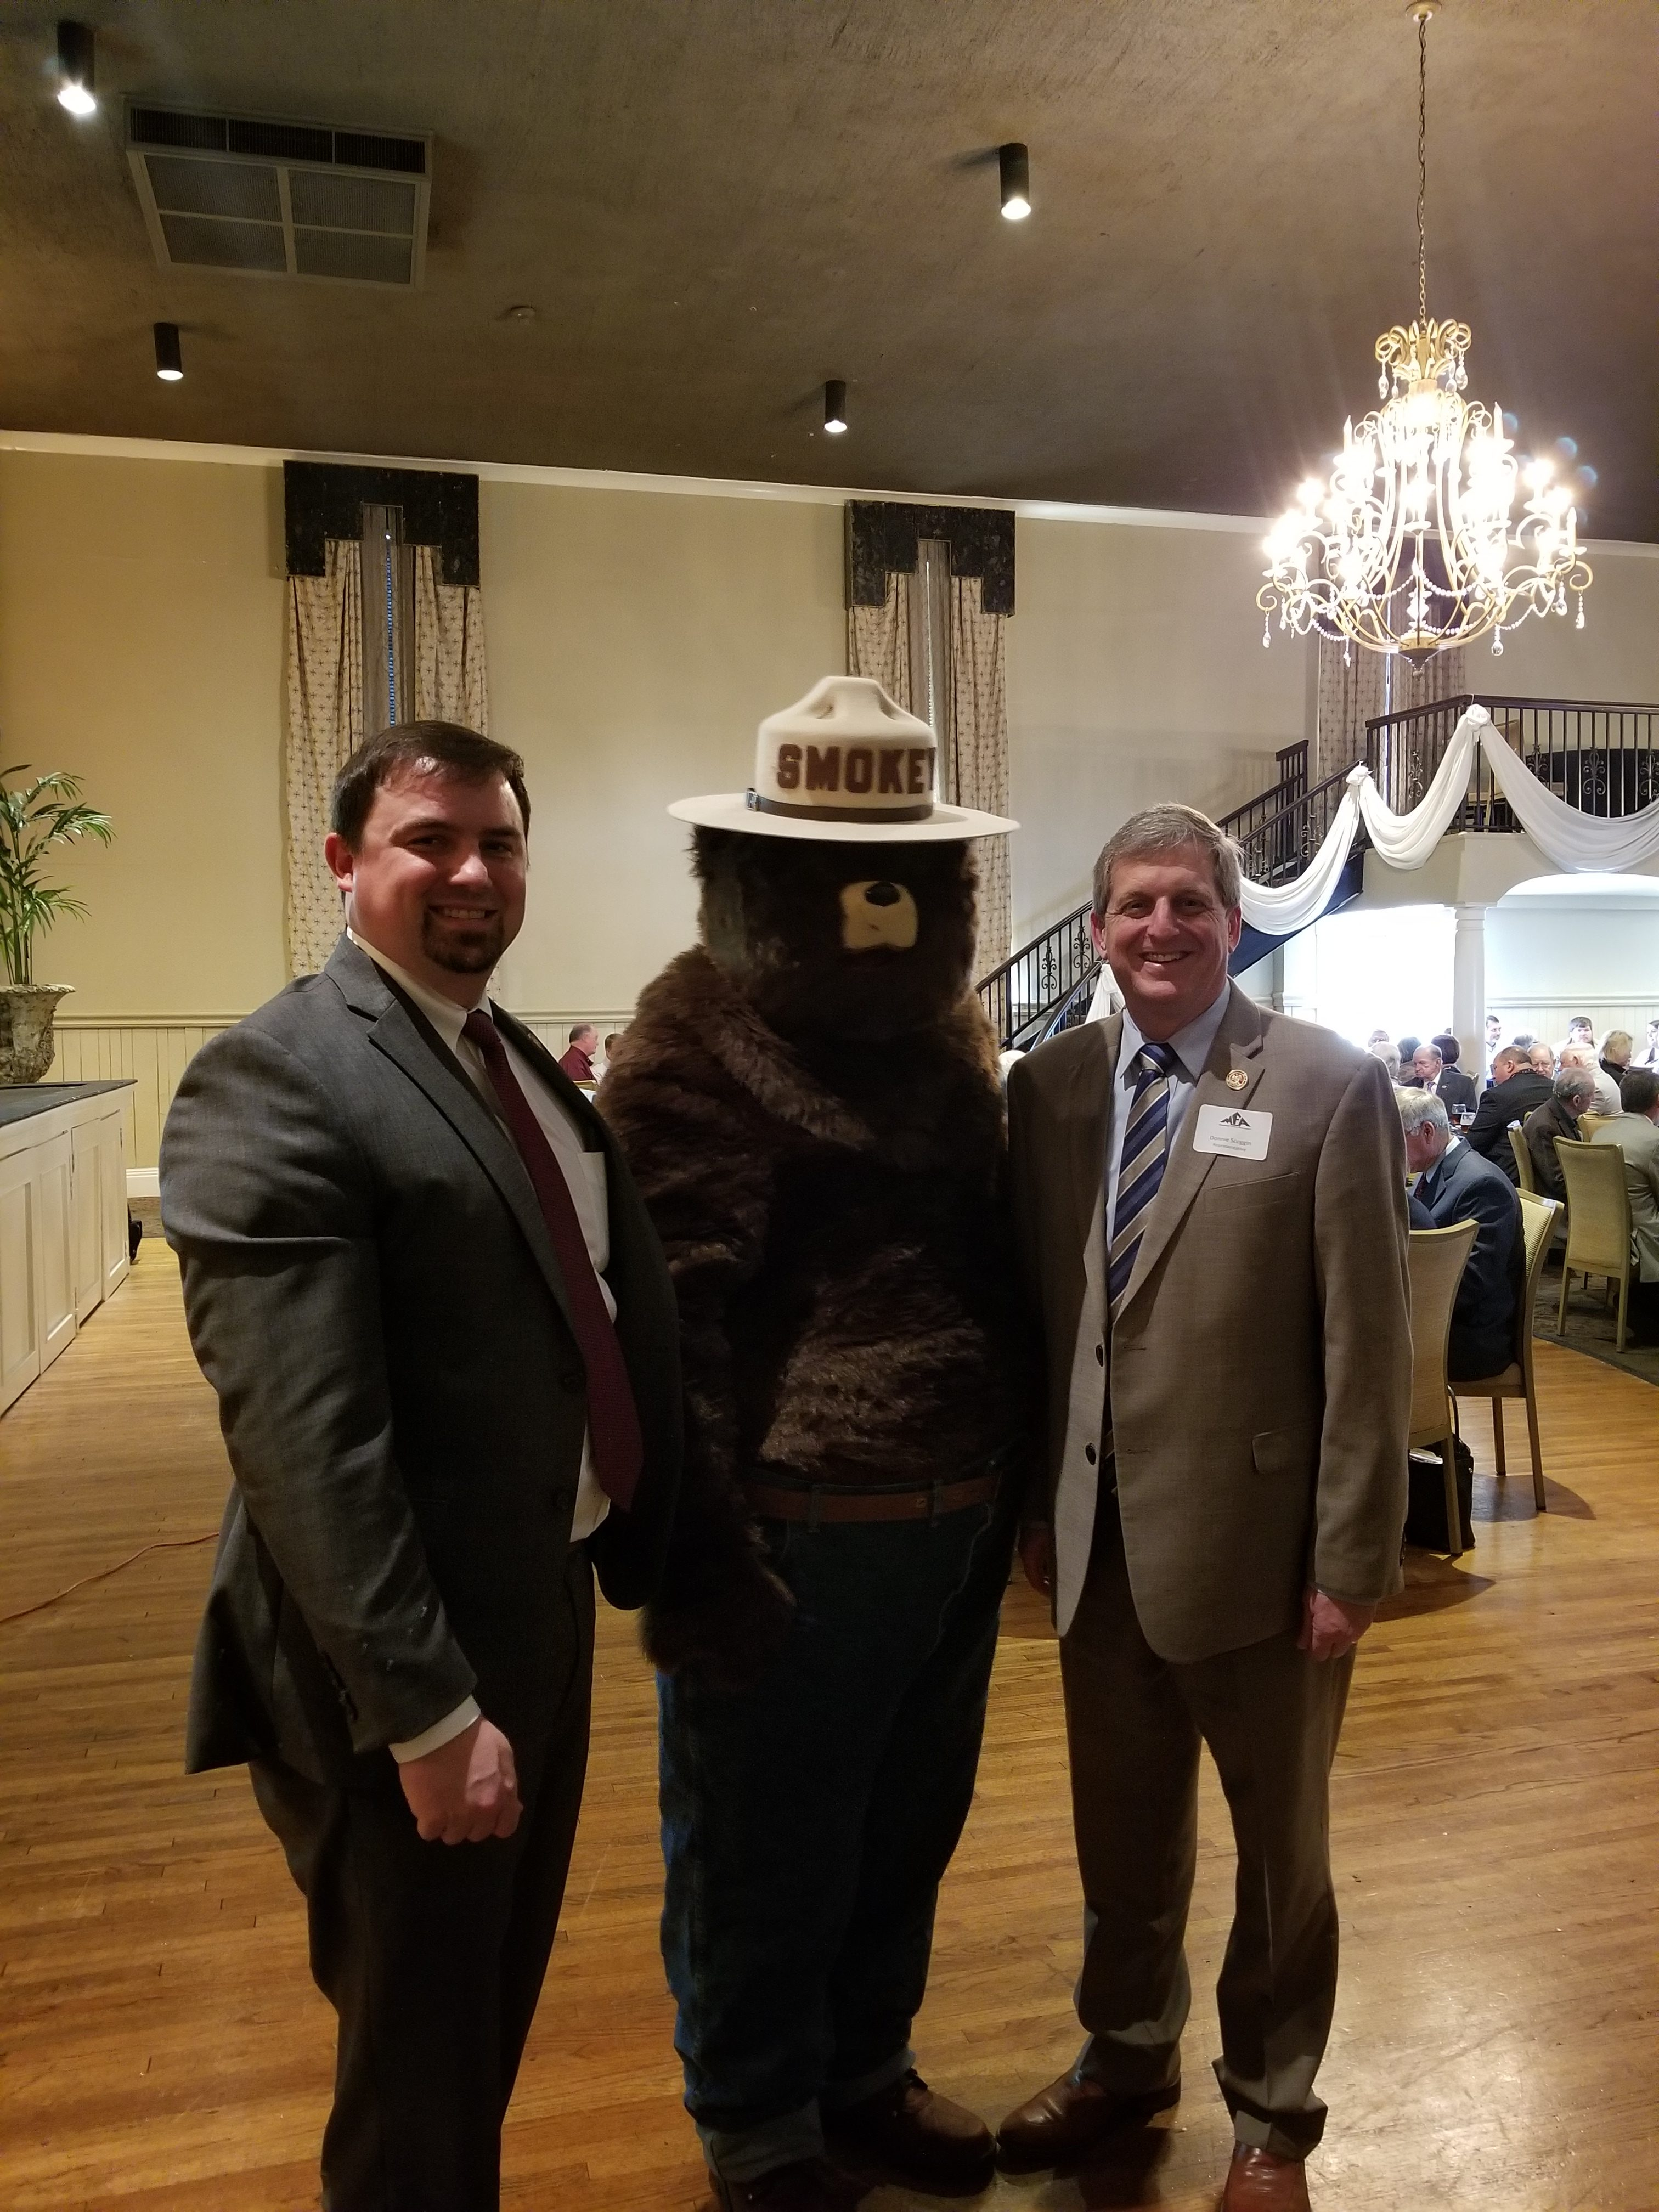 Donnie and Shane Barnett from Wayne County celebrating Smokey Bear's 75th birthday!